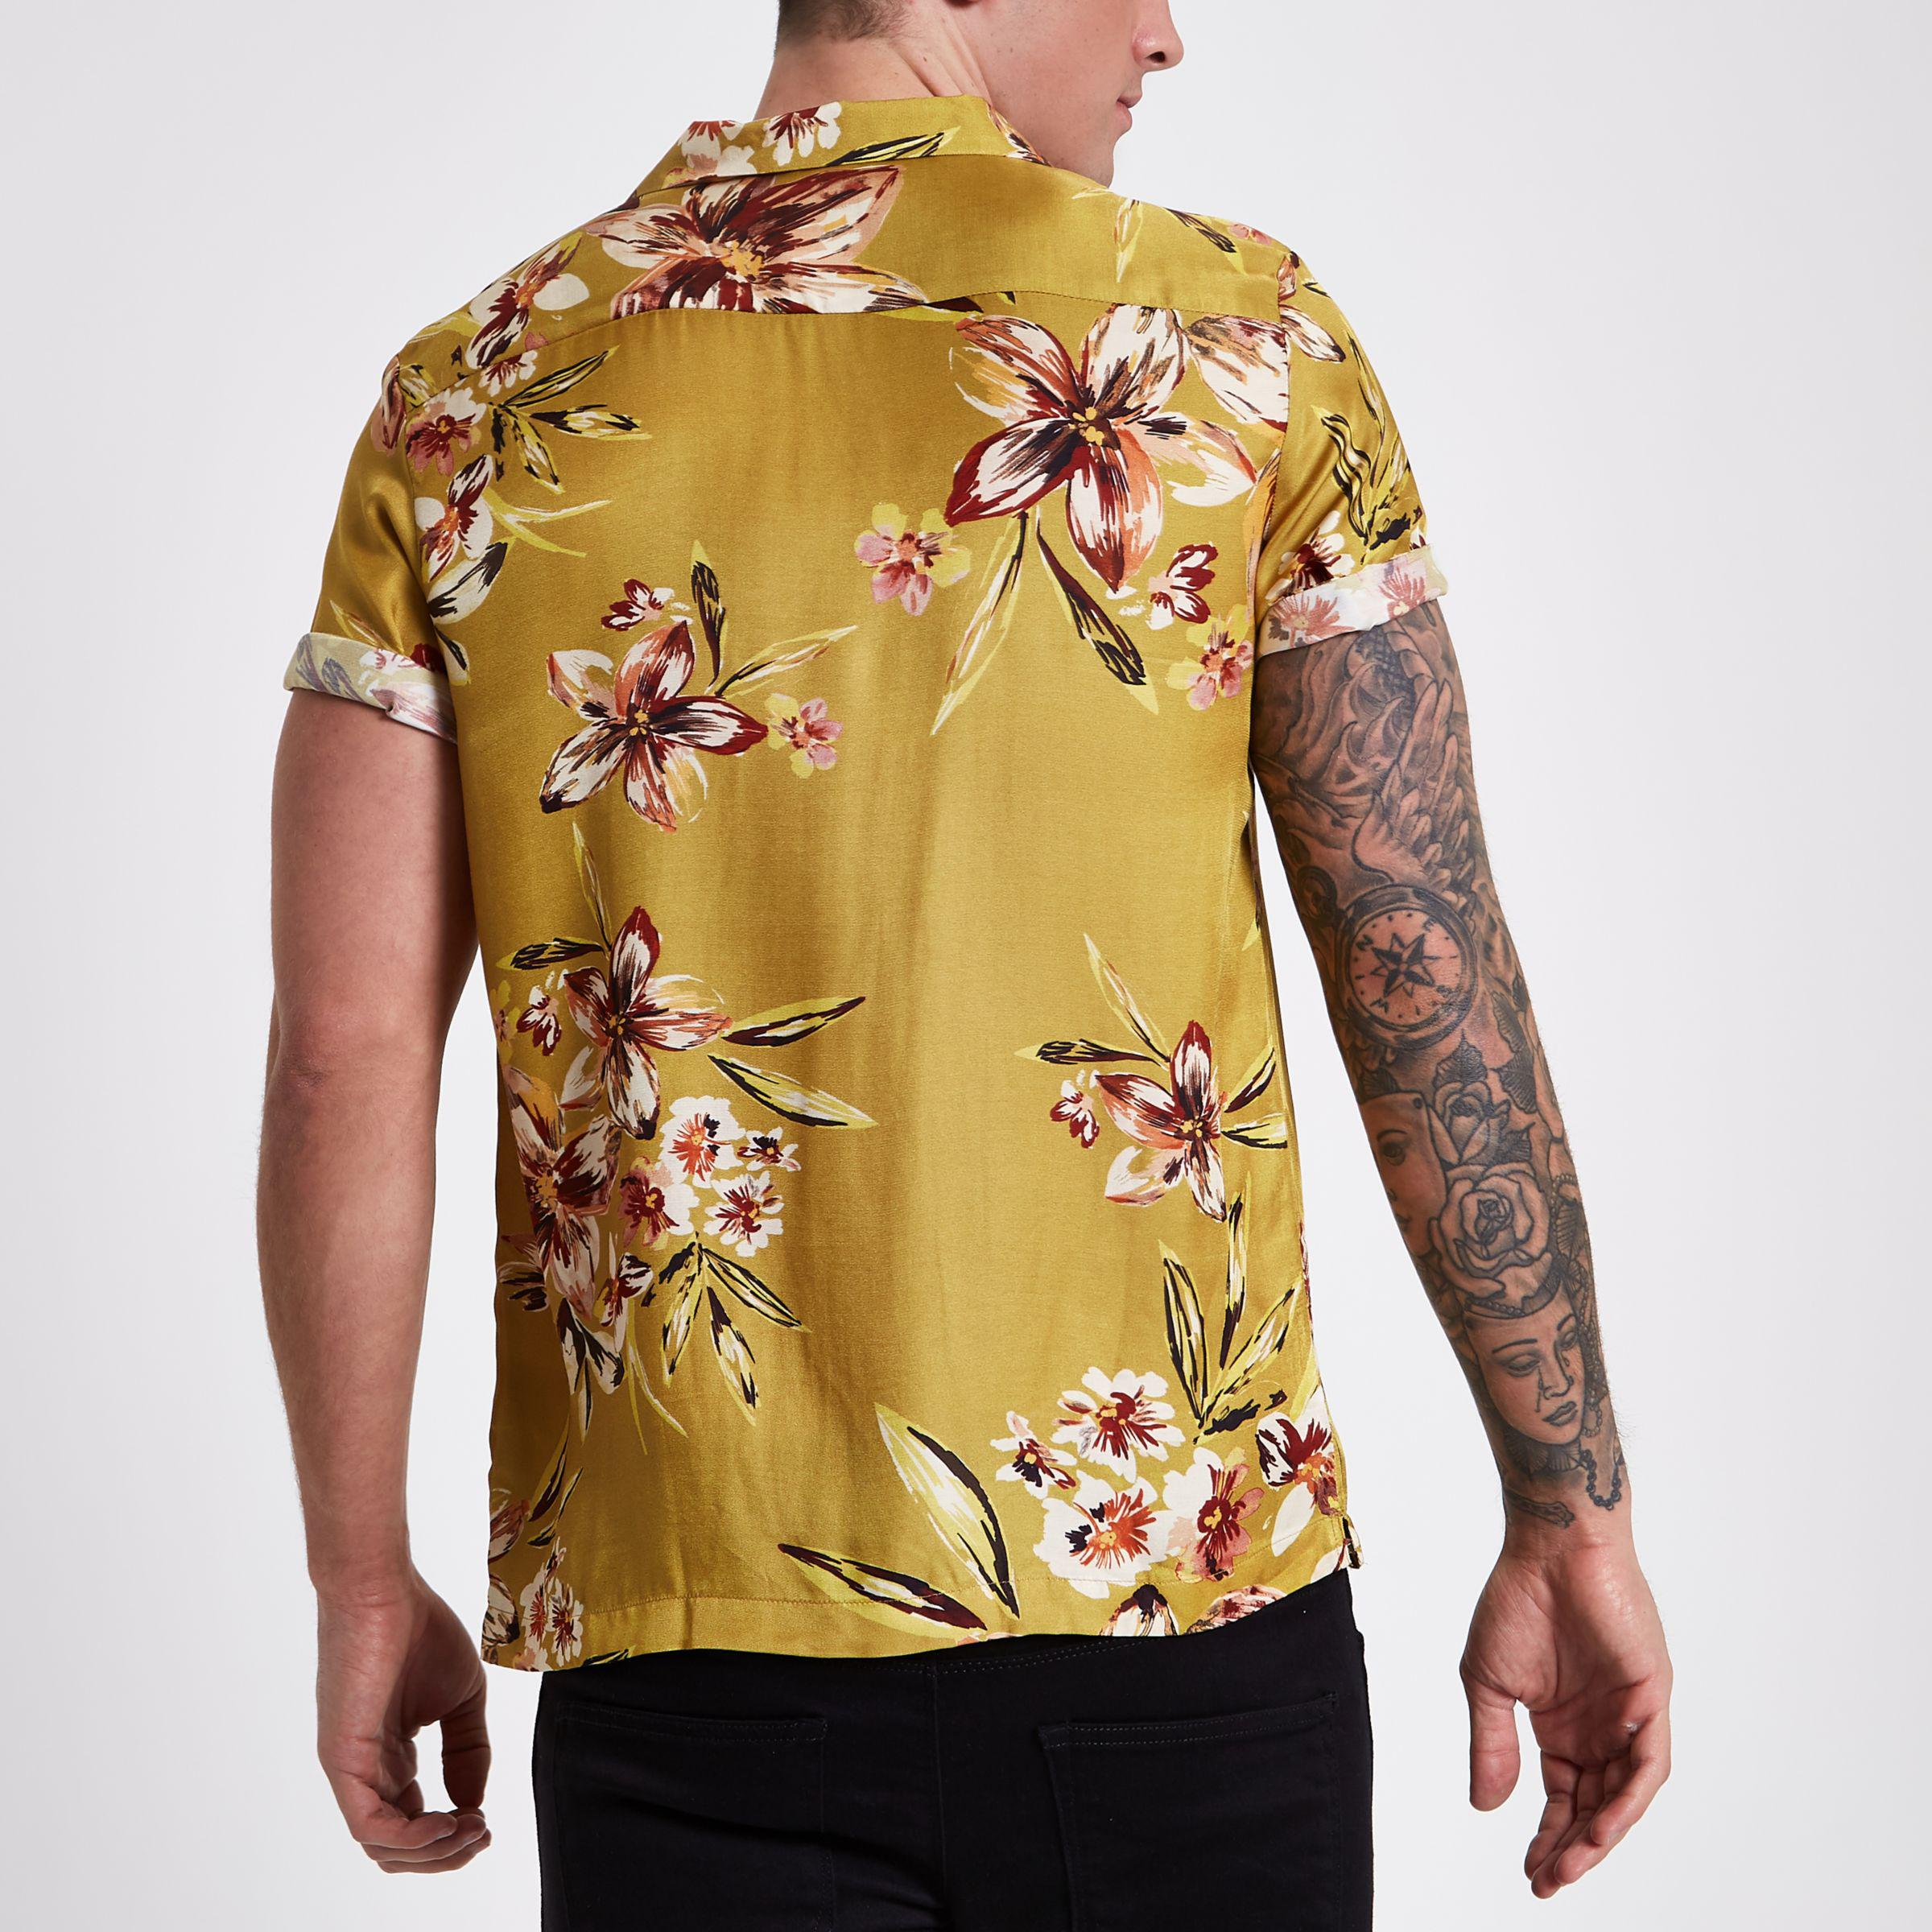 76a94cfcdf8 Lyst - River Island Mustard Floral Short Sleeve Shirt in Yellow for Men